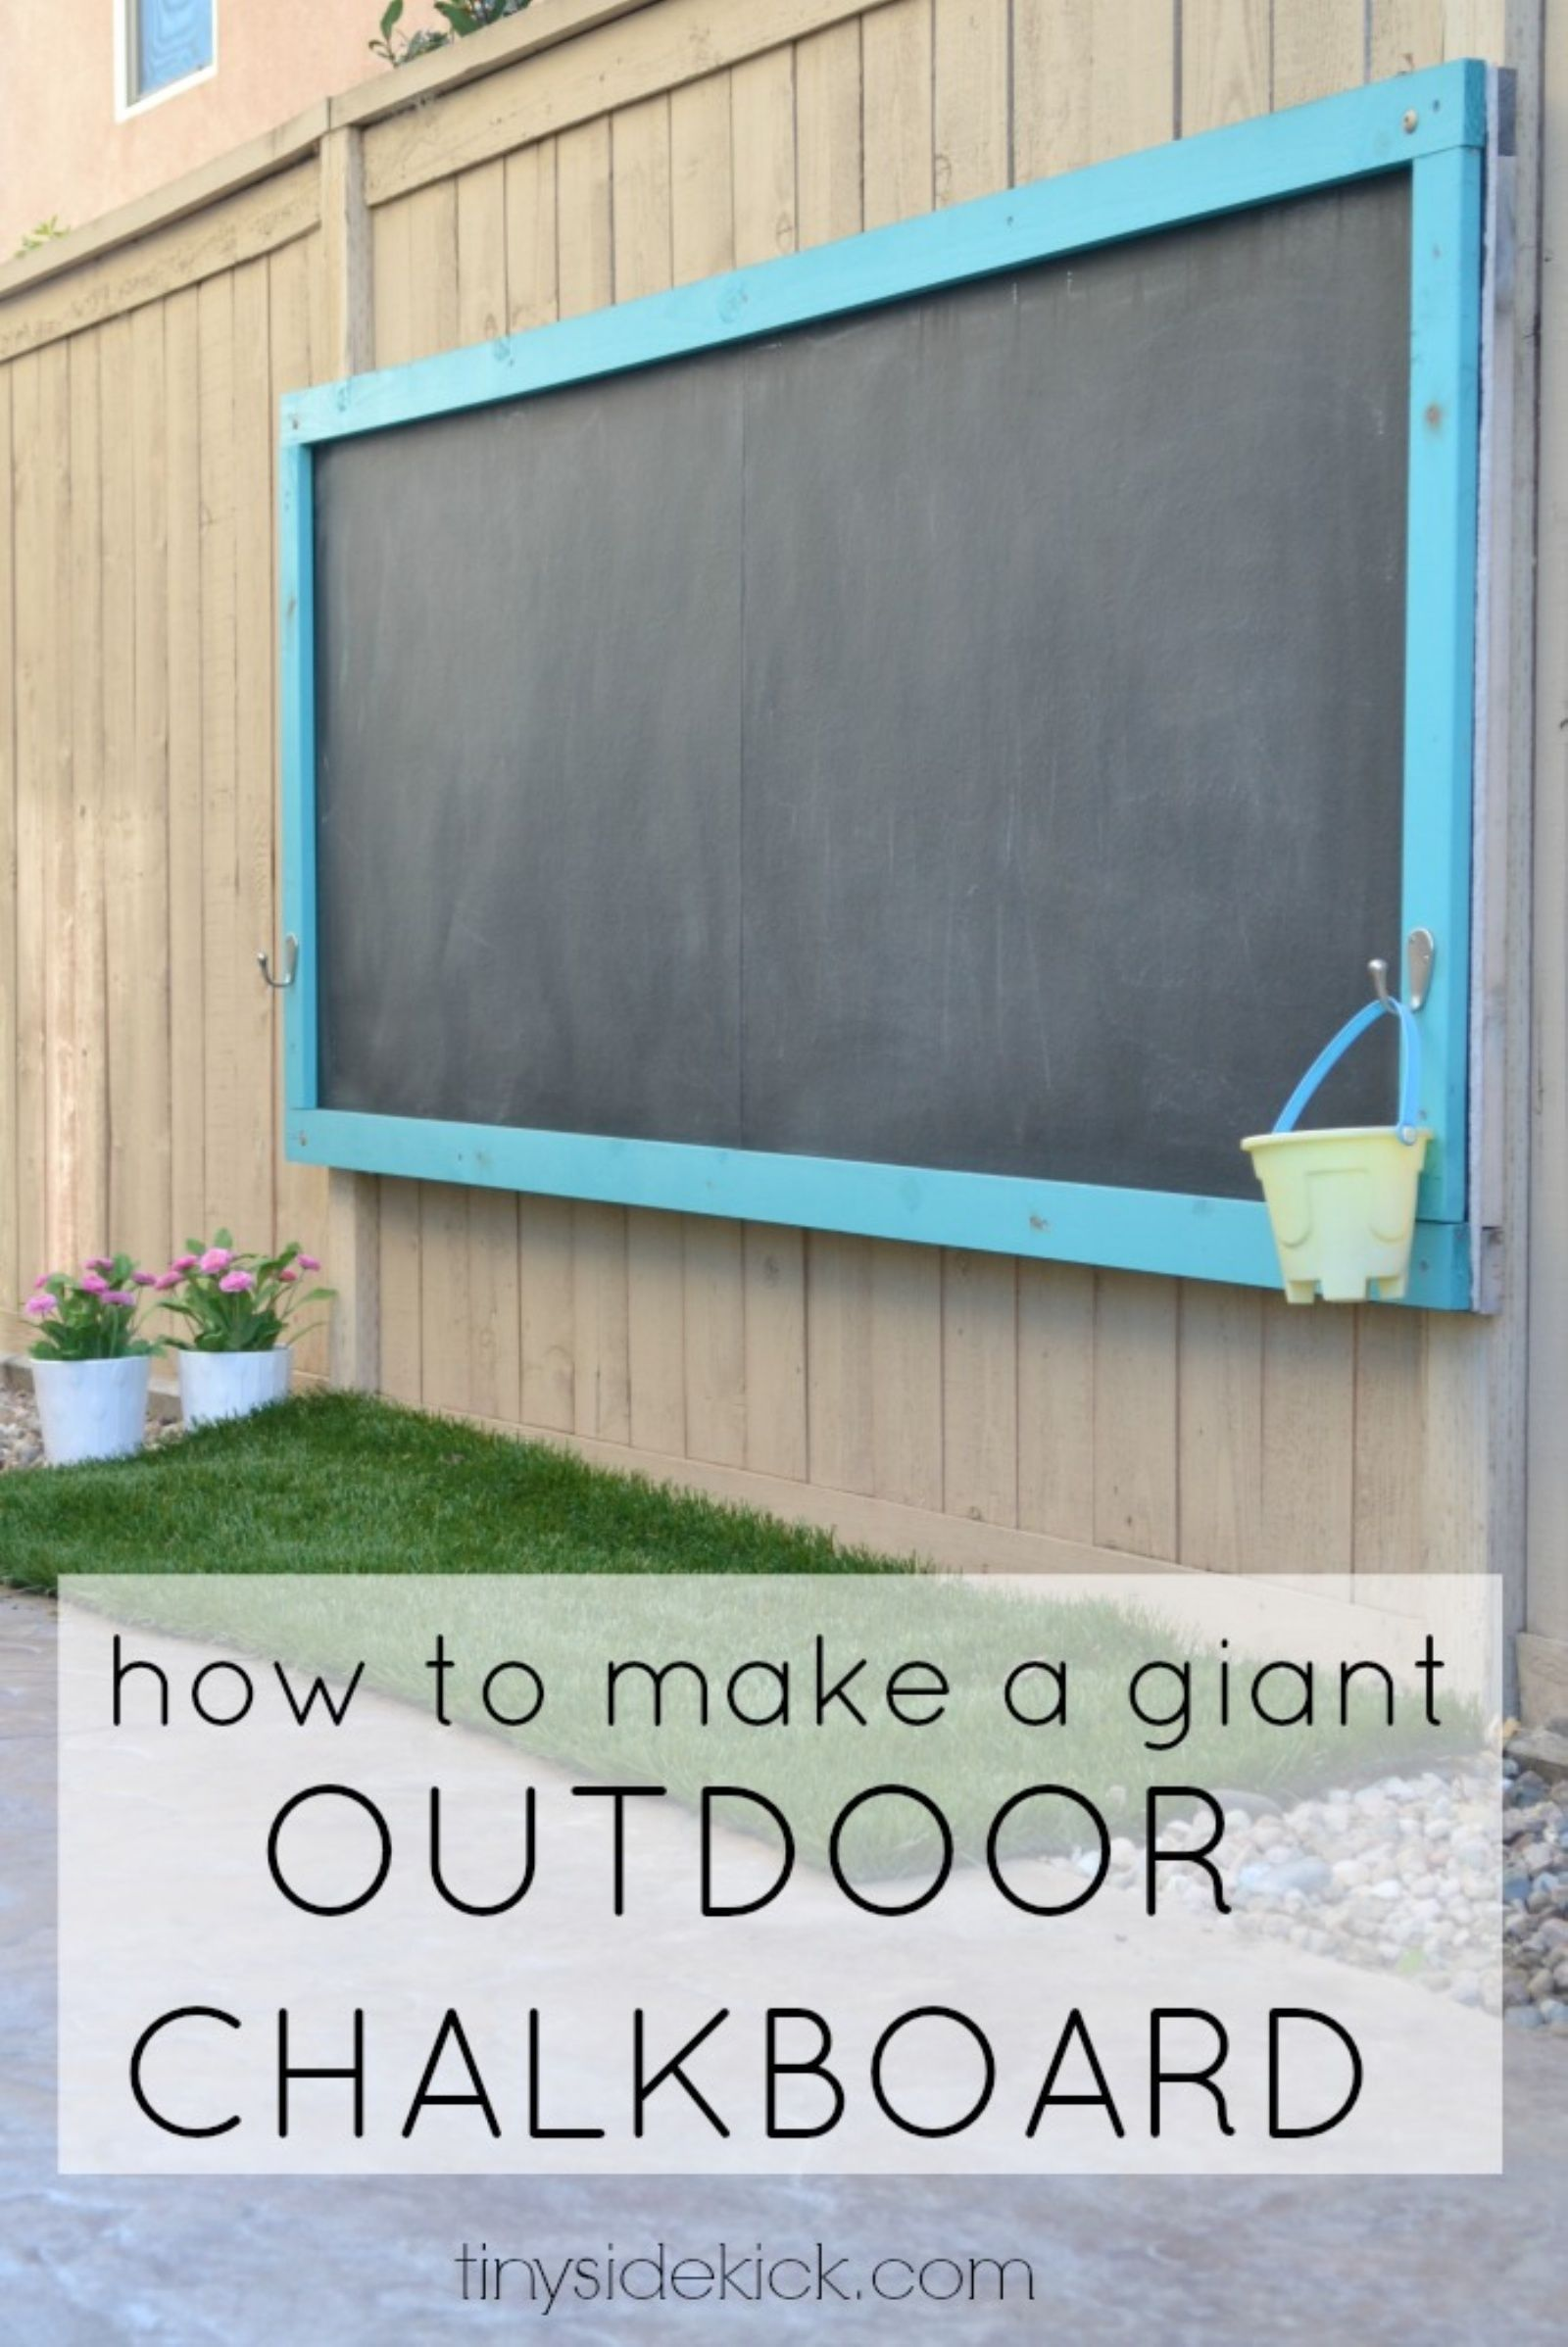 50 Ideas That Will Beautify Your Yard (Without Breaking The